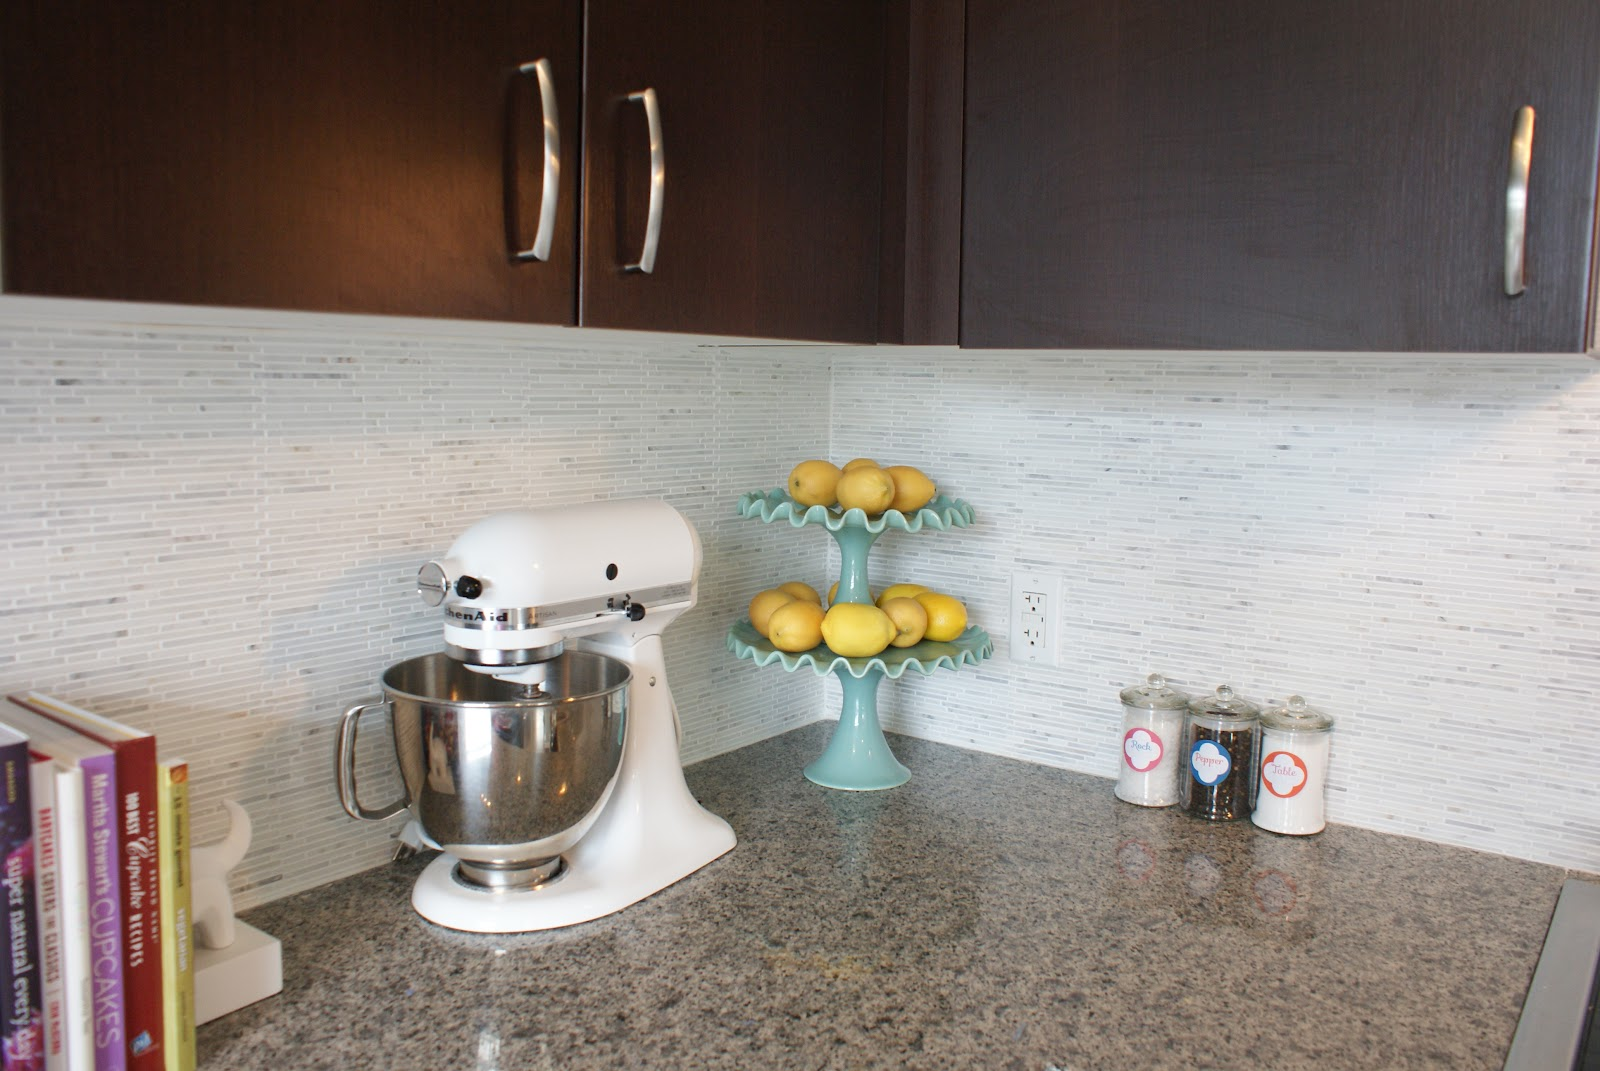 white kitchen backsplash ideas homesfeed artistic white kitchen backsplash black stained wood cabinets brown granite kitchen counter modern mixer a decorative